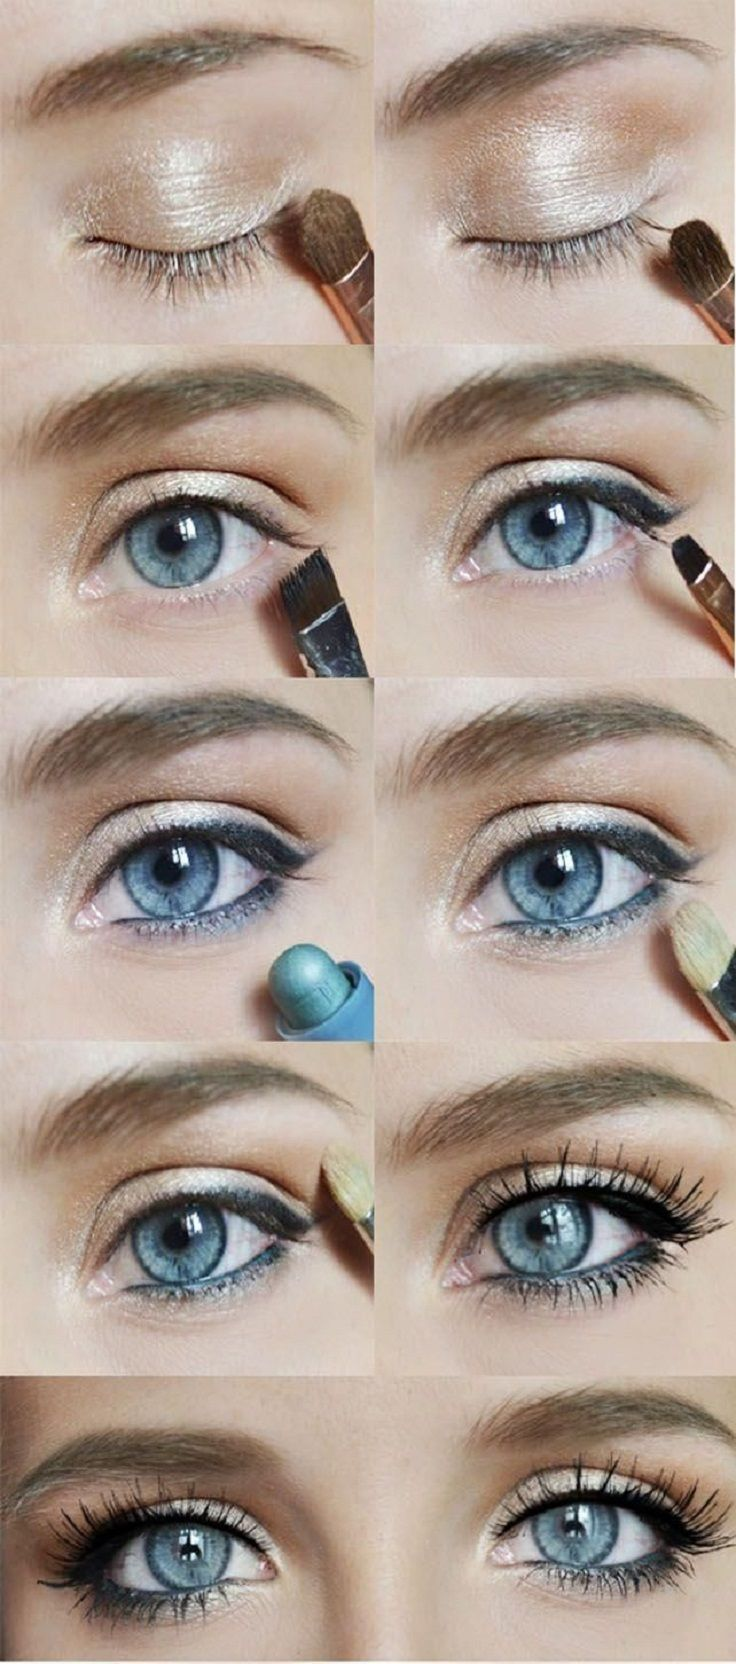 Eye Popping Tutorial - Top 10 Best Eye Make-Up Tutorials of 2013